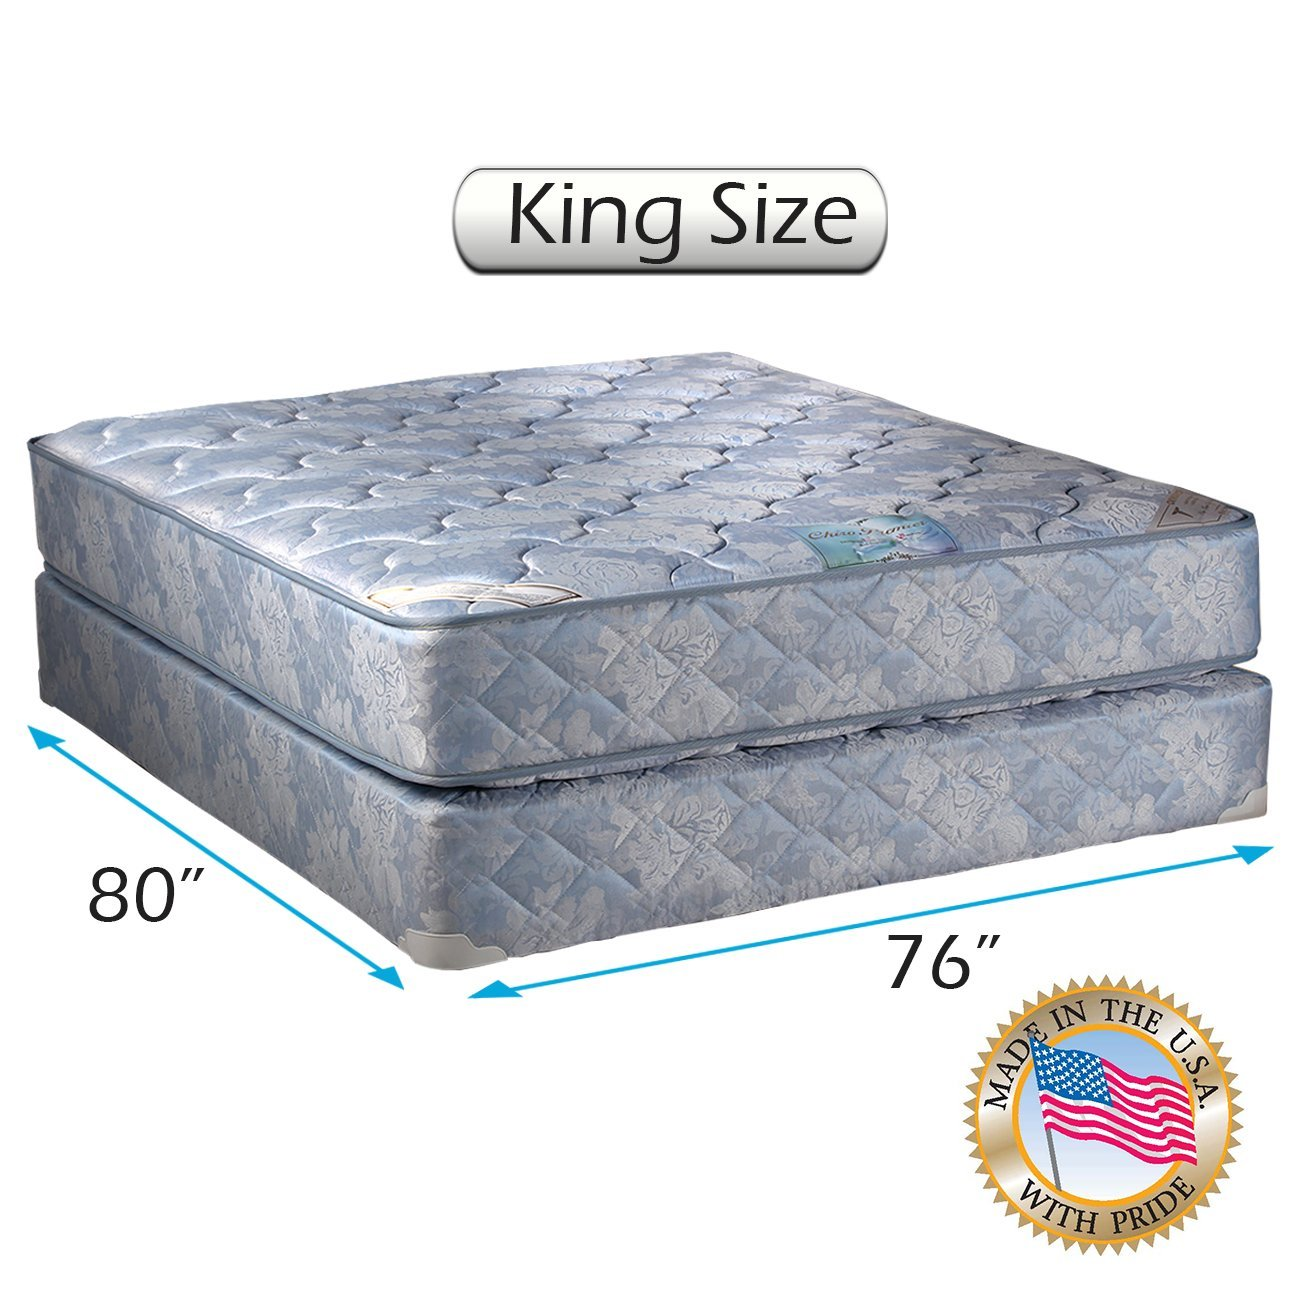 Chiro Premier (King size) Two-Sided Medium Firm (Blue) Mattress Set with Bed Frame Included - Fully Assembled, Spinal Support, Orthopedic Type, Longlasting Comfort by Dream Solutions USA